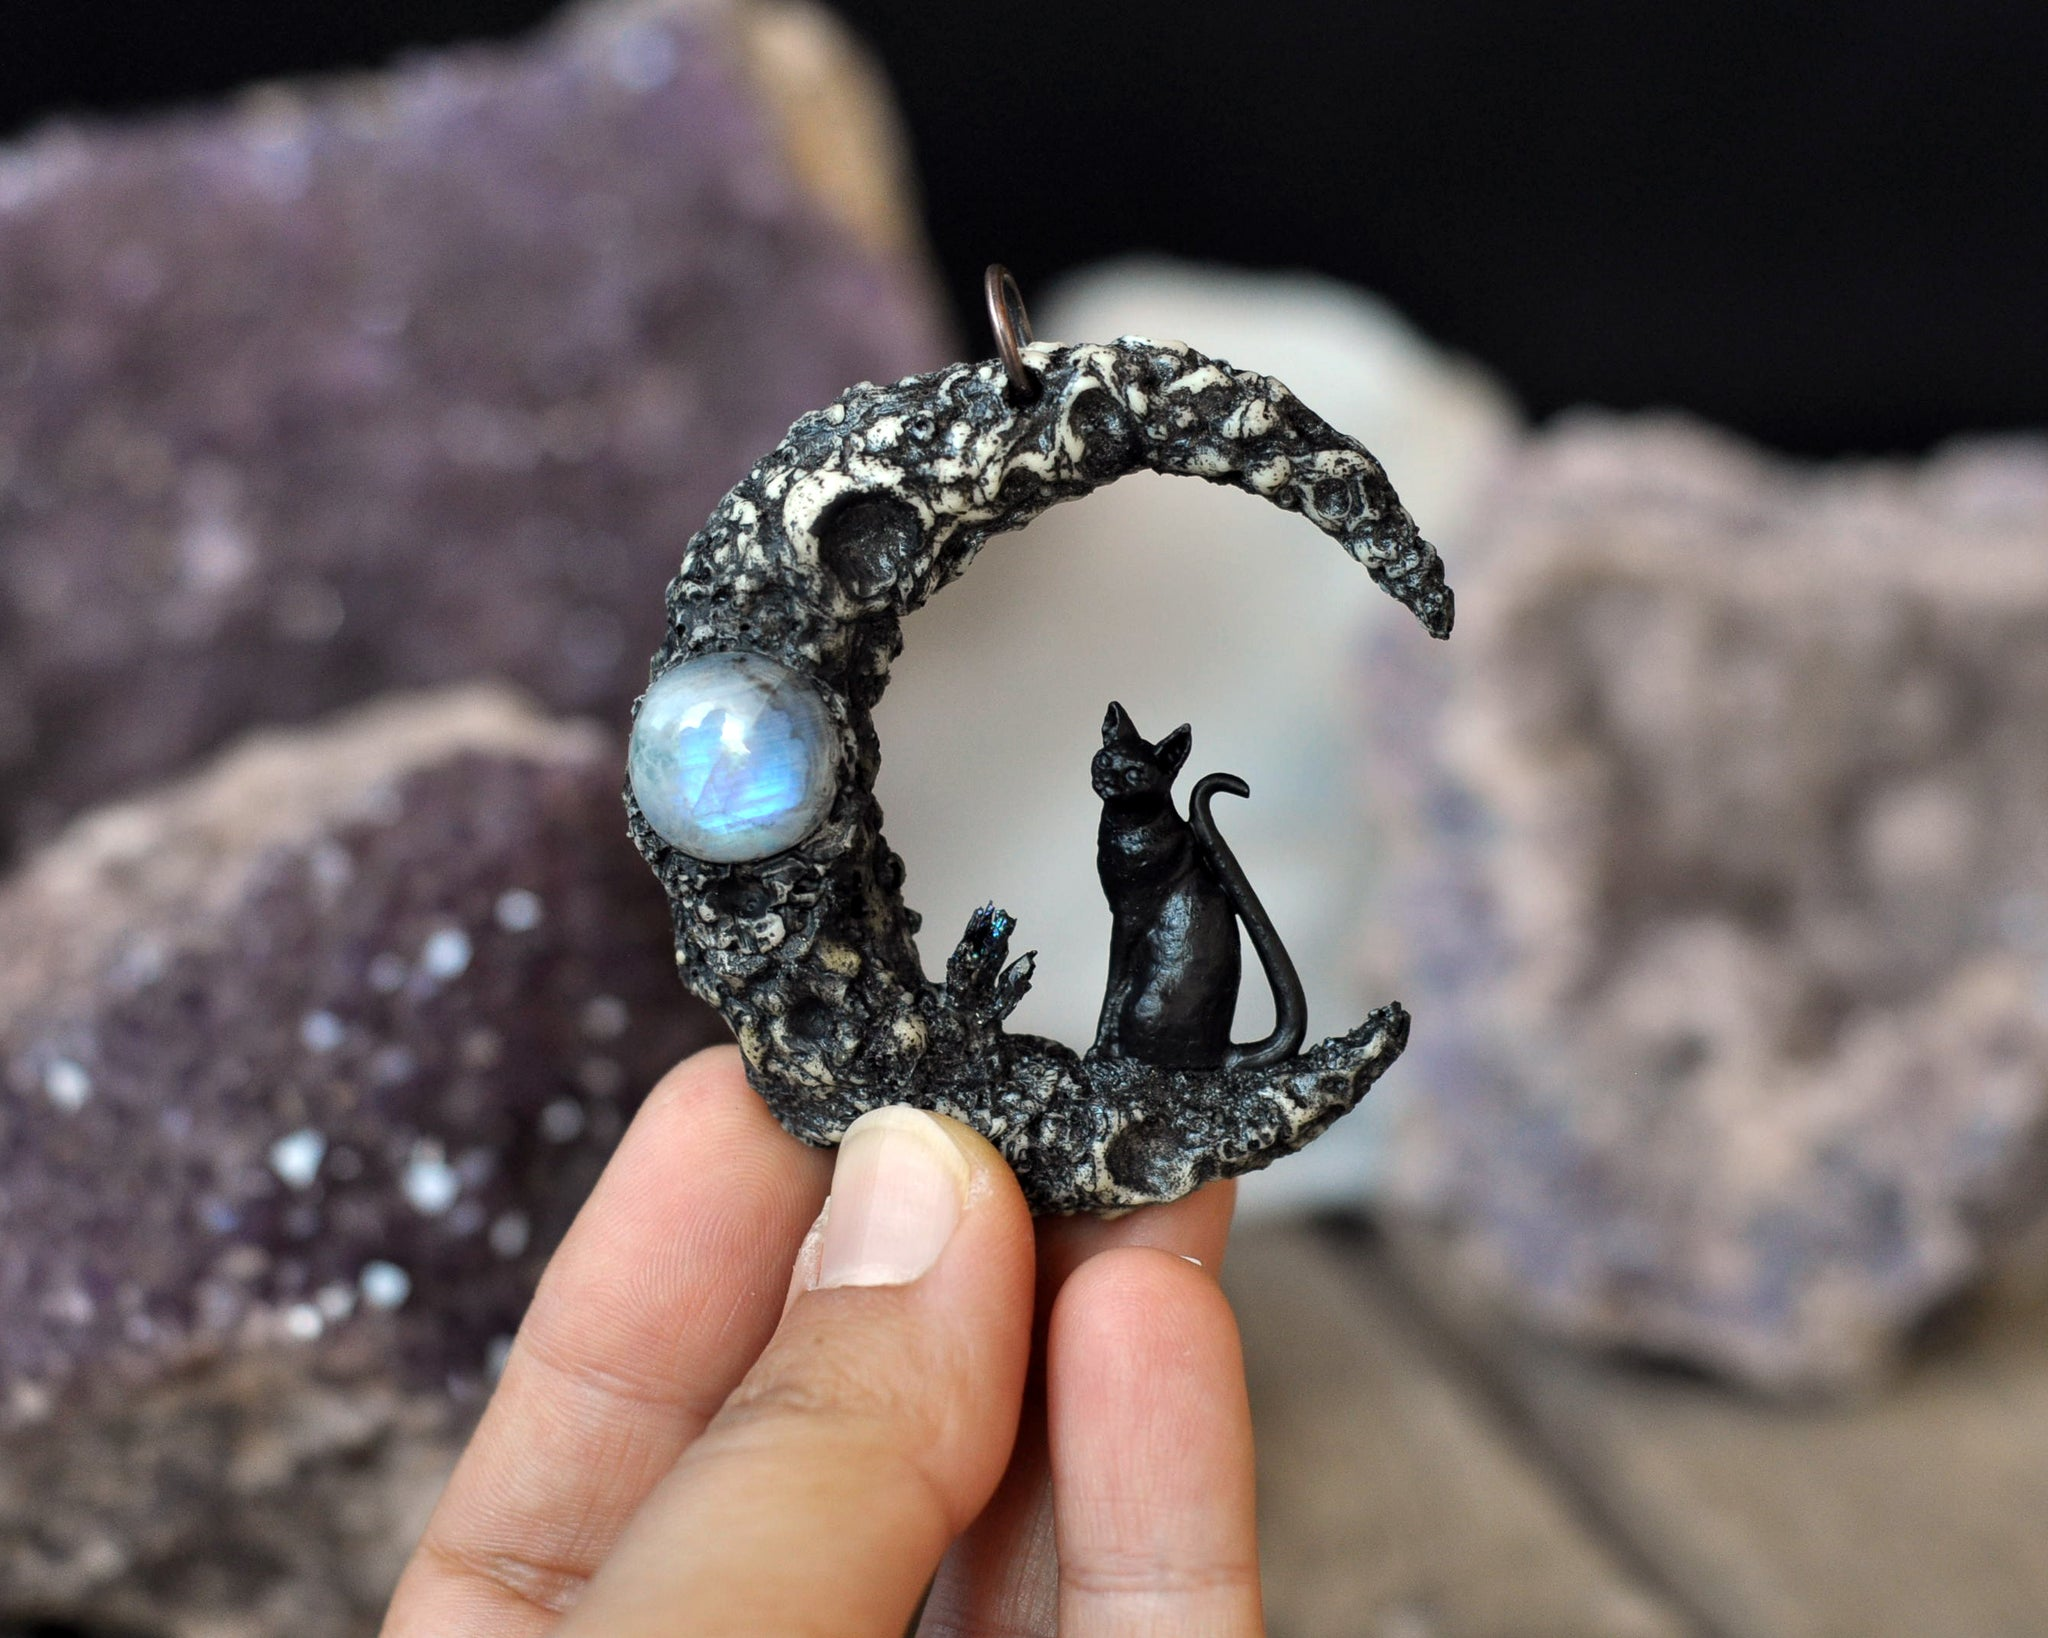 Crater Moon Pendant, Black Cat Pendant, Rainbow Moonstone Pendant, Crescent Sailor Moon Necklace